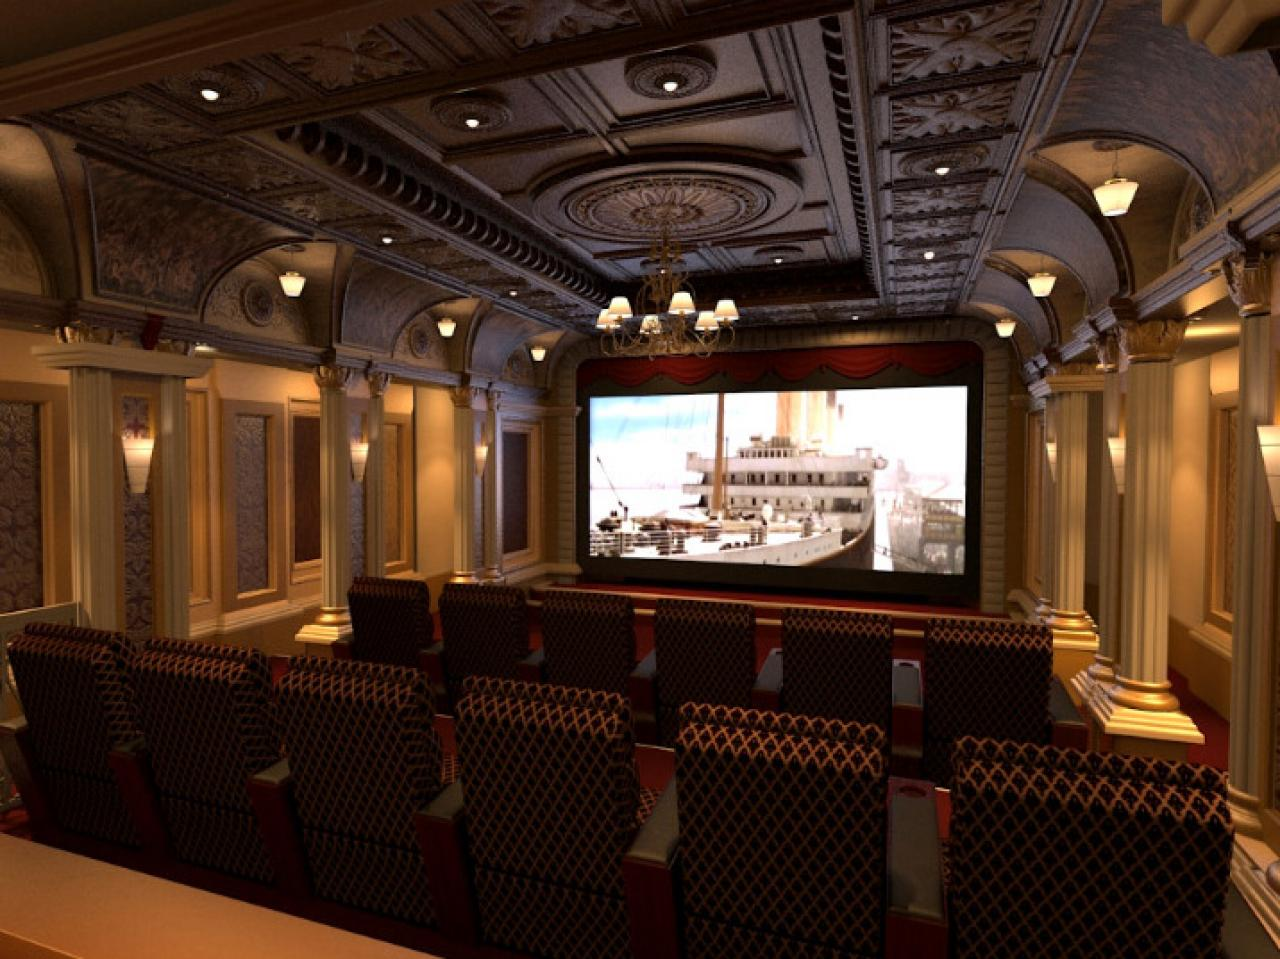 Home Theater Room Design Ideas home theater room design with fine turn your living room into a mini new Lord Of The Theaters